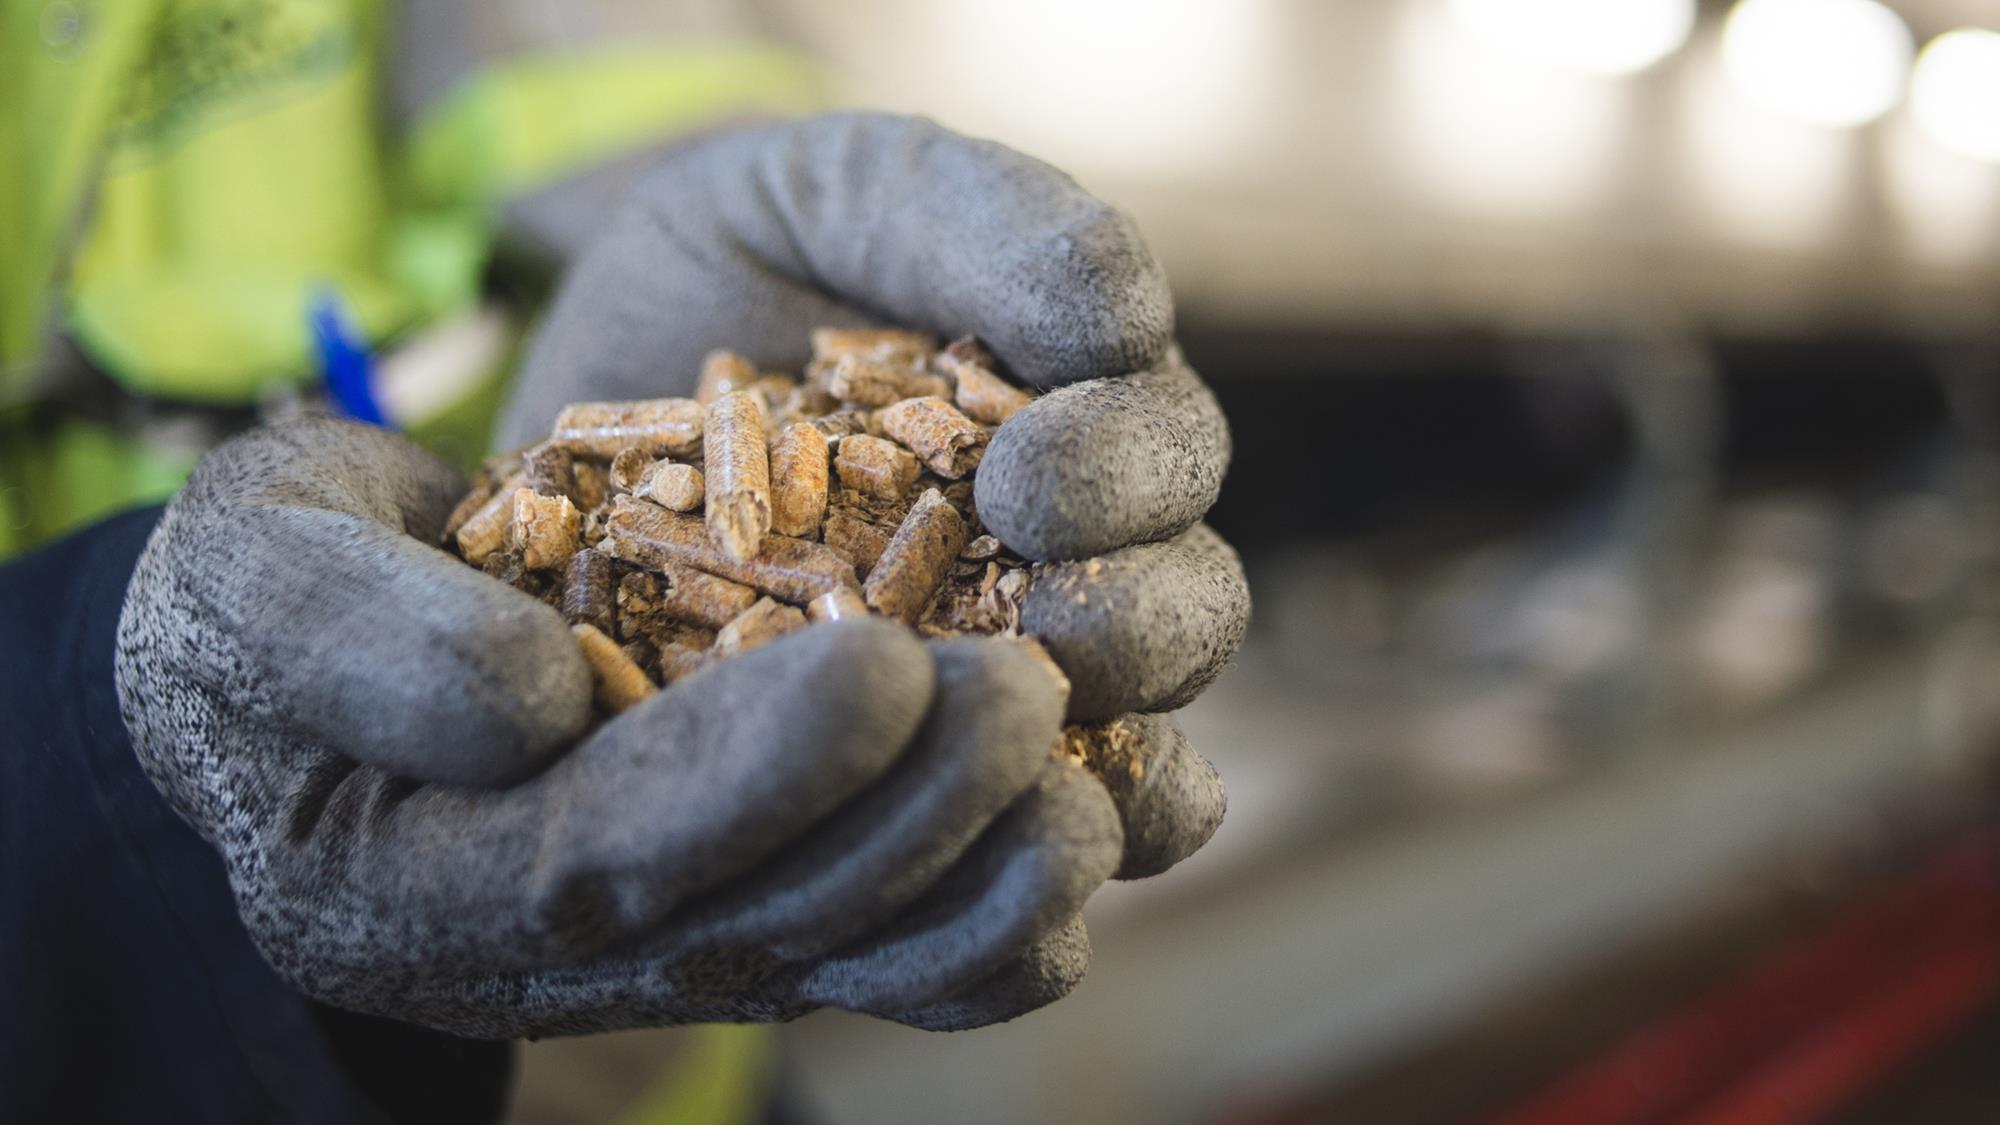 Biomass carbon capture pilot points to a new sector whose time has come